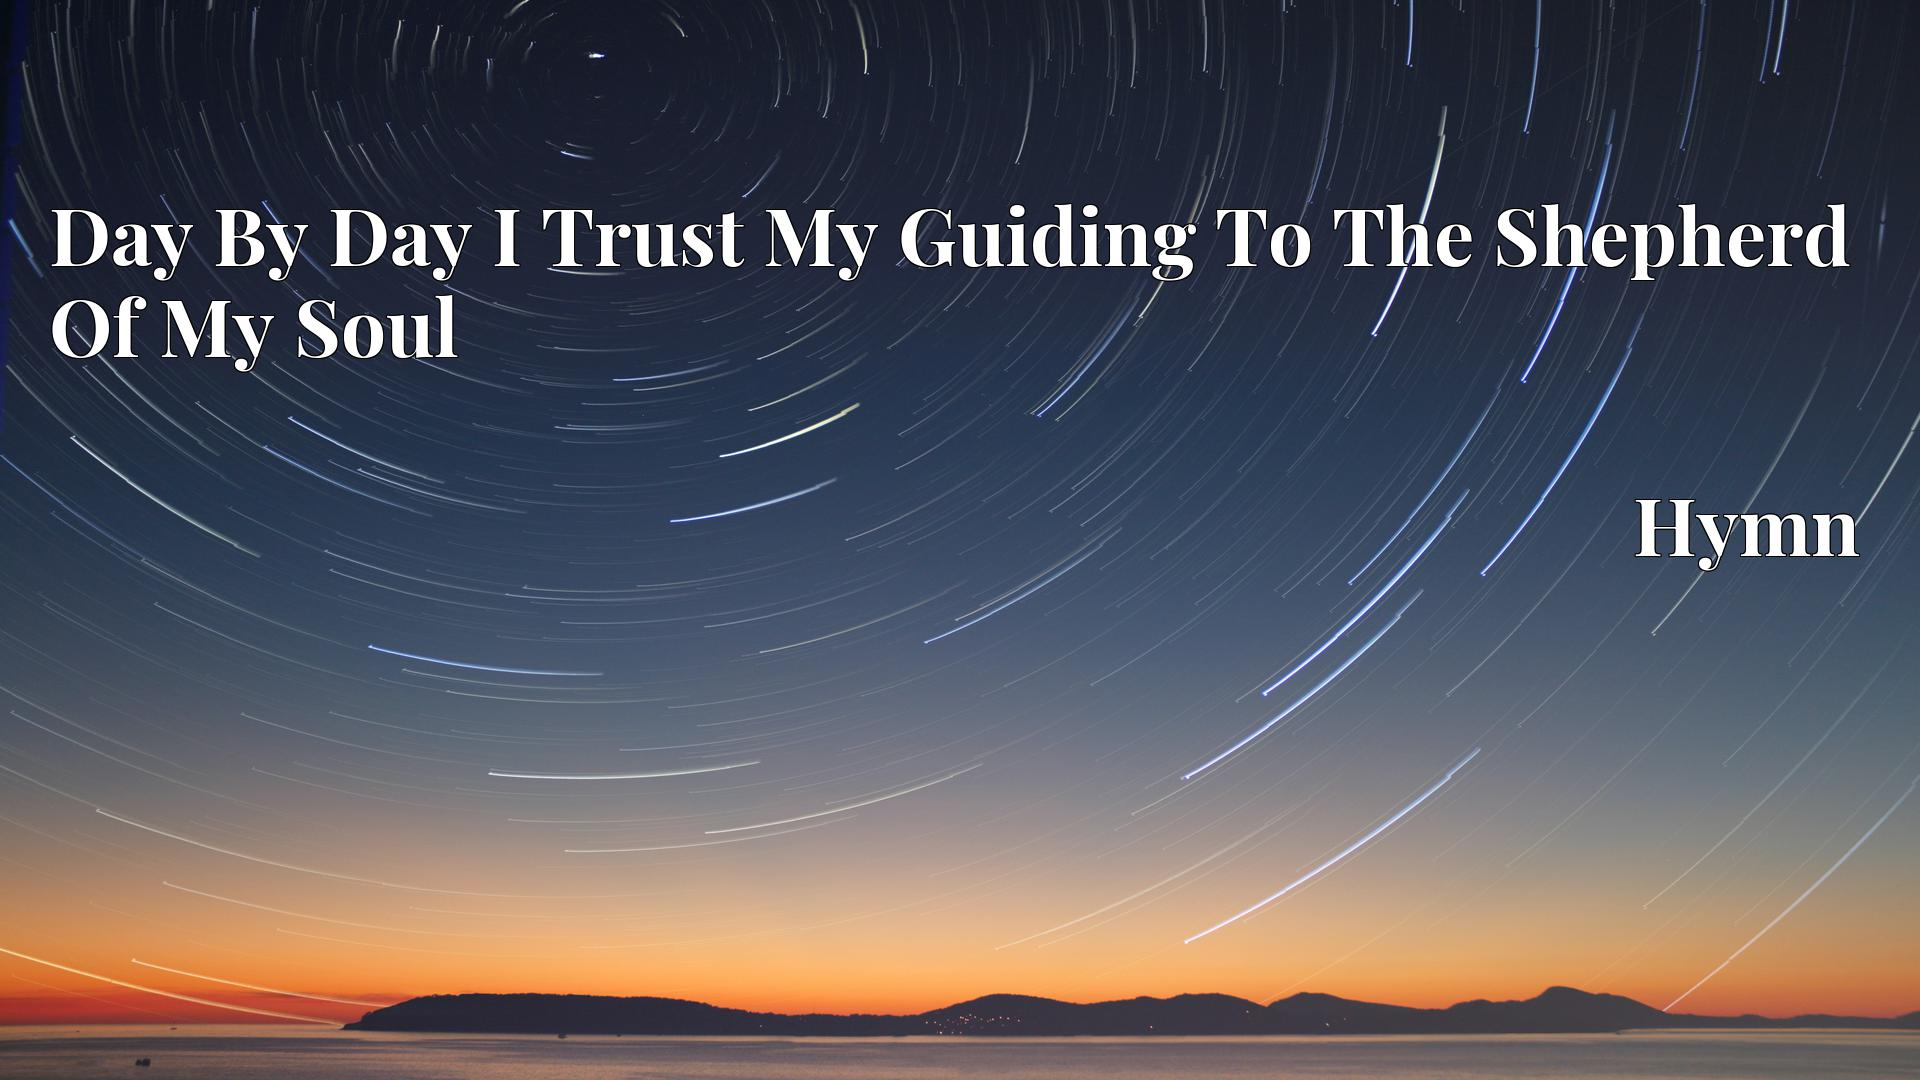 Day By Day I Trust My Guiding To The Shepherd Of My Soul - Hymn